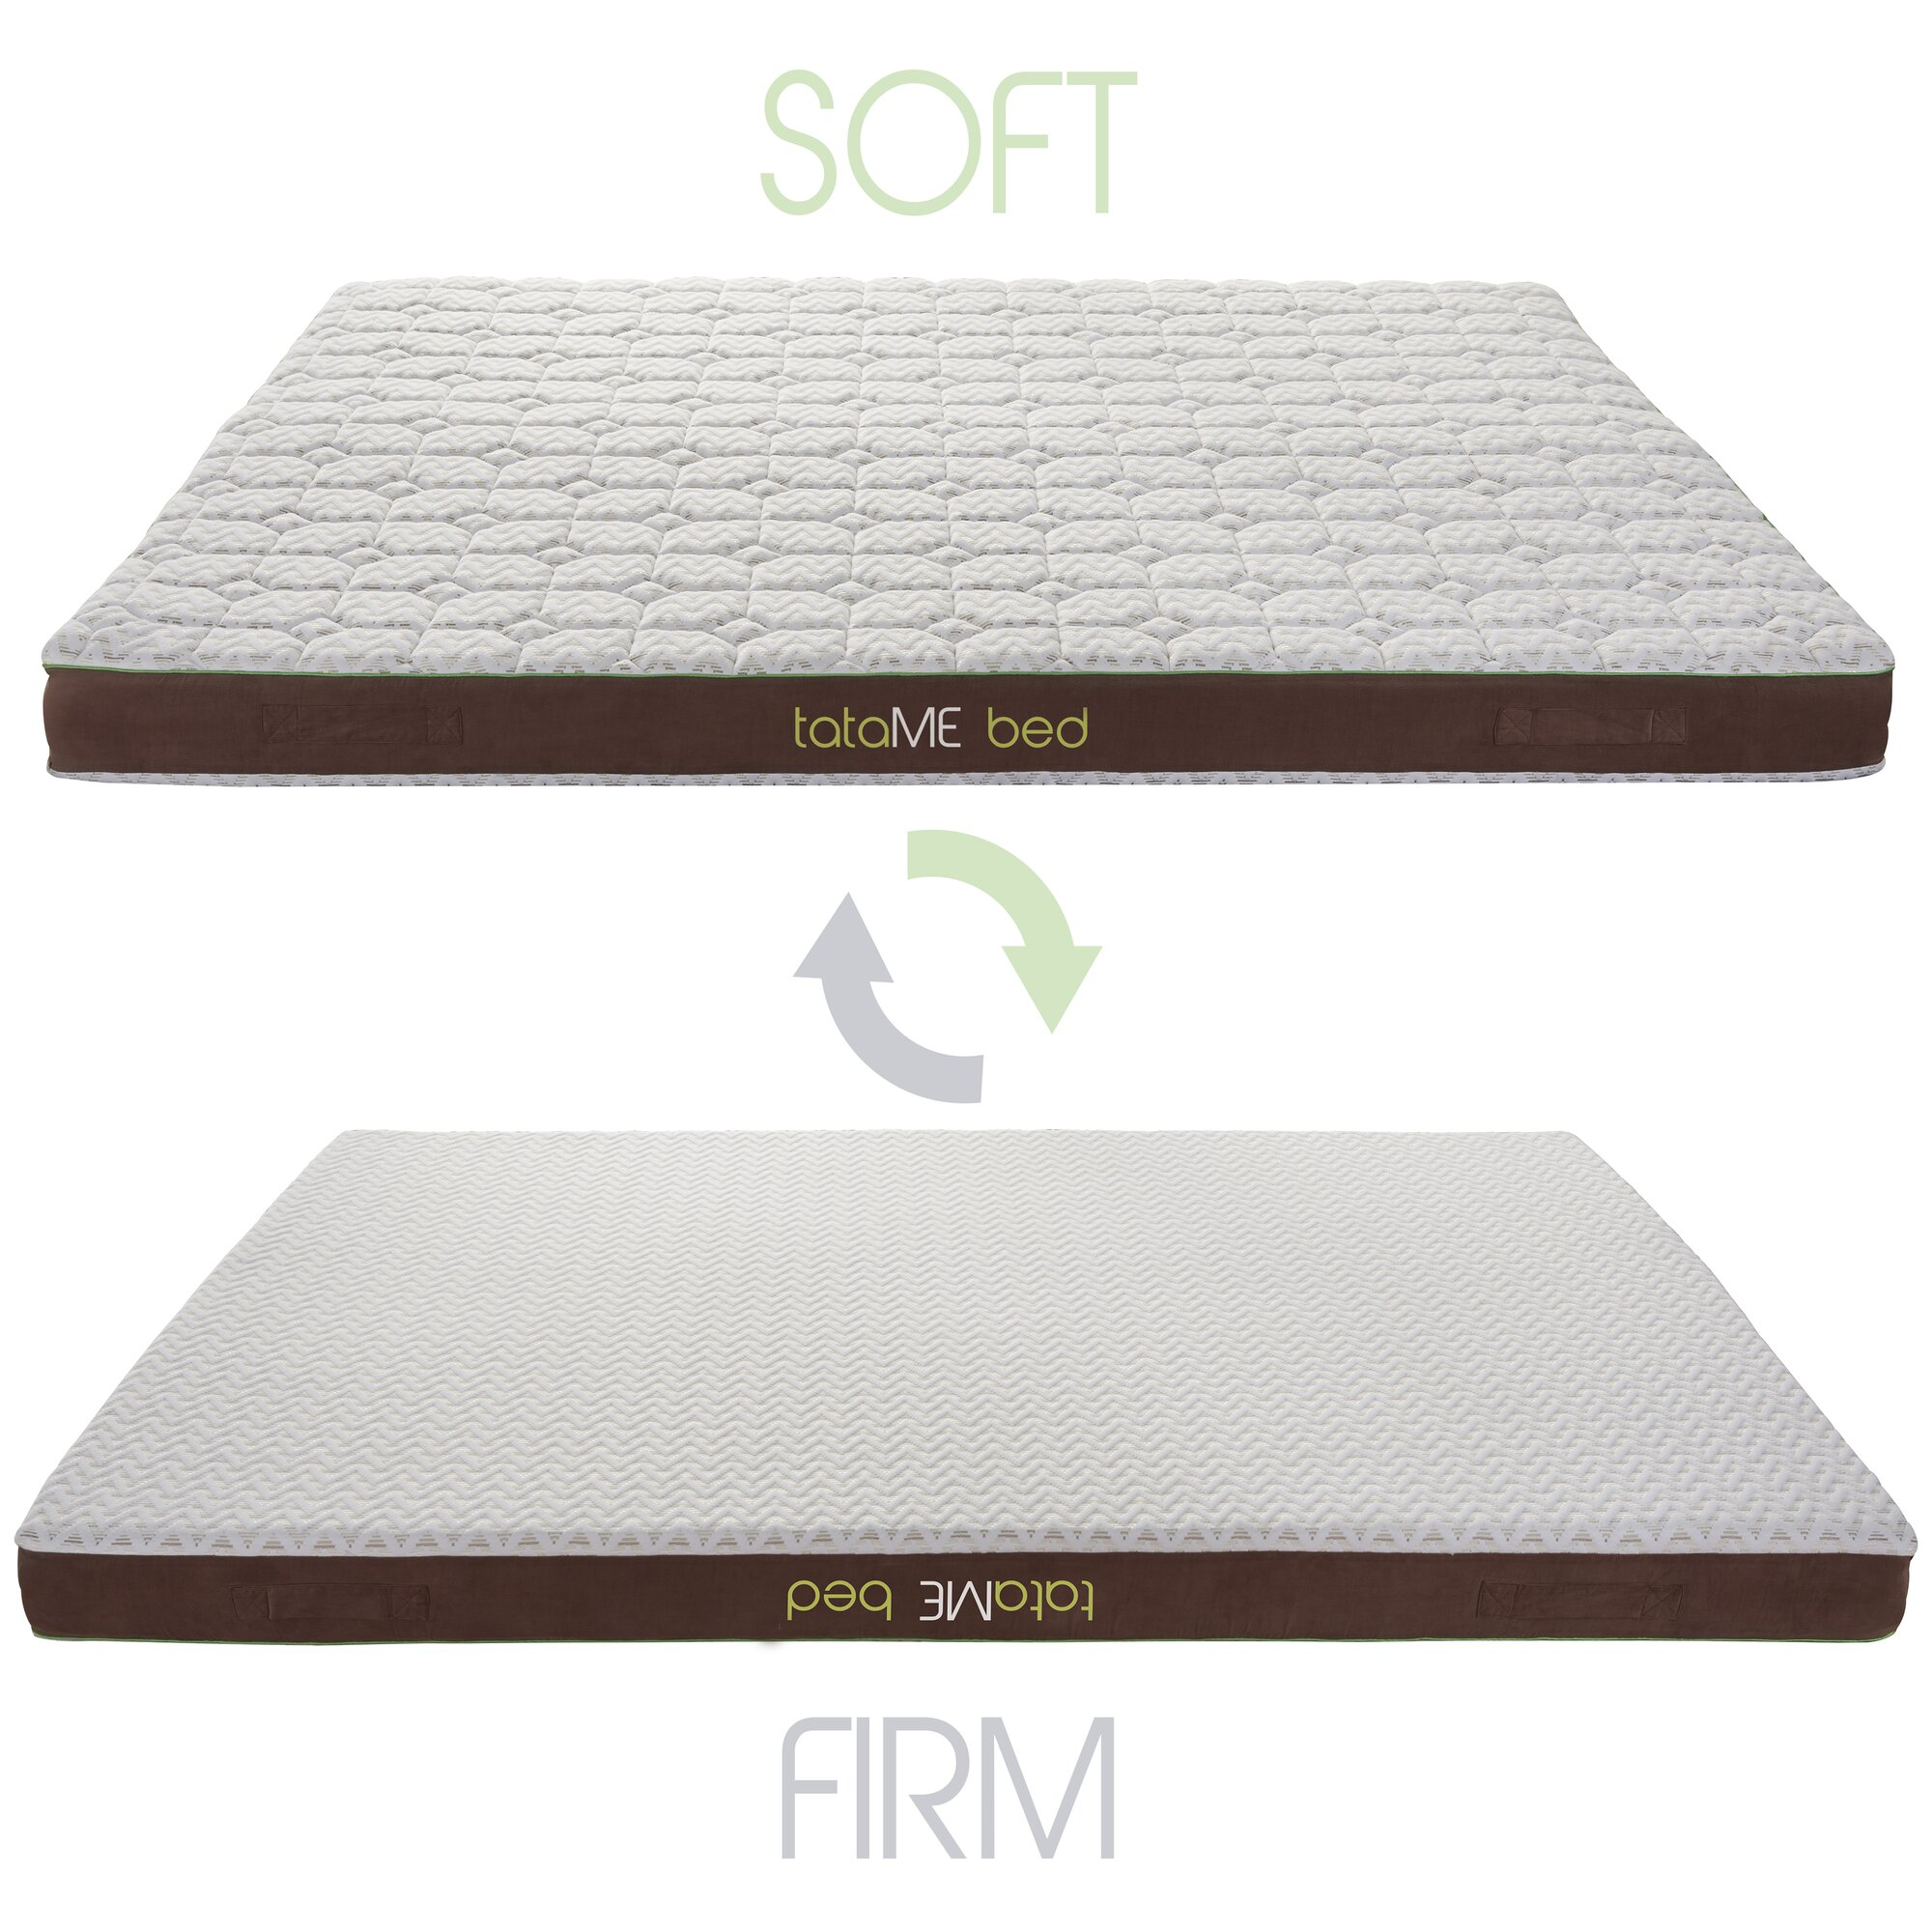 Anew edit 5 firm memory foam mattress reviews Mattress sale memory foam